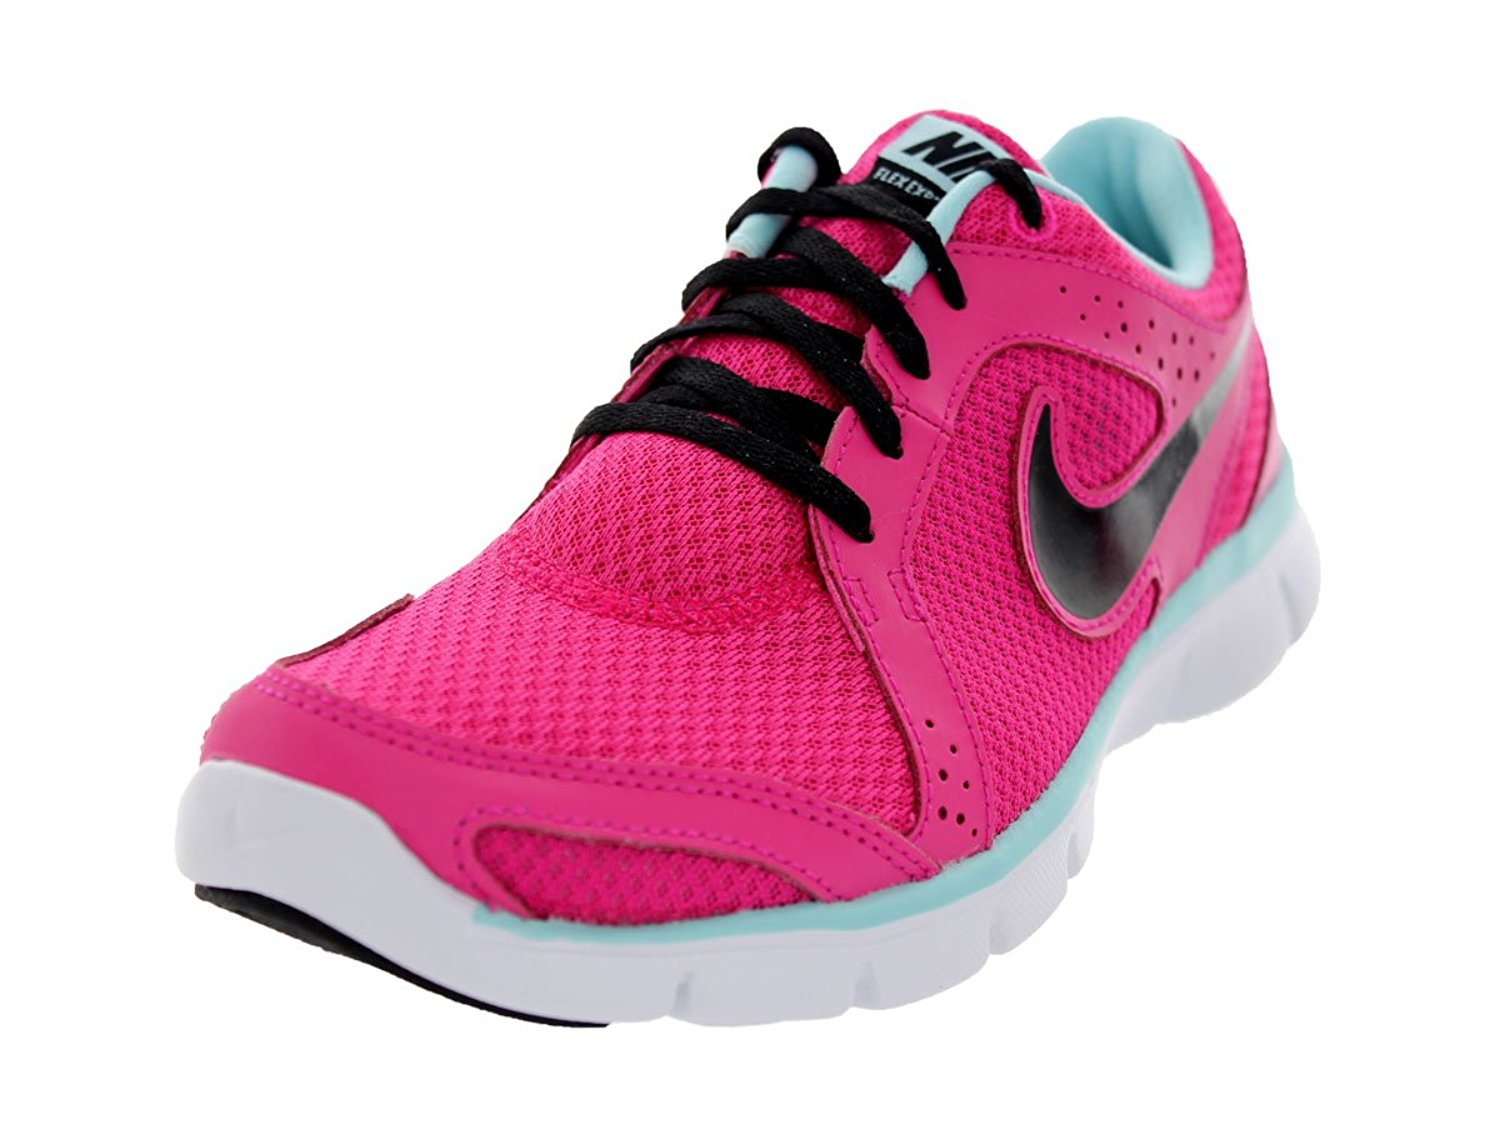 5c40396fc5dbd Get Quotations · Nike Flex Experience Run Pink Black Ladies Running Shoes